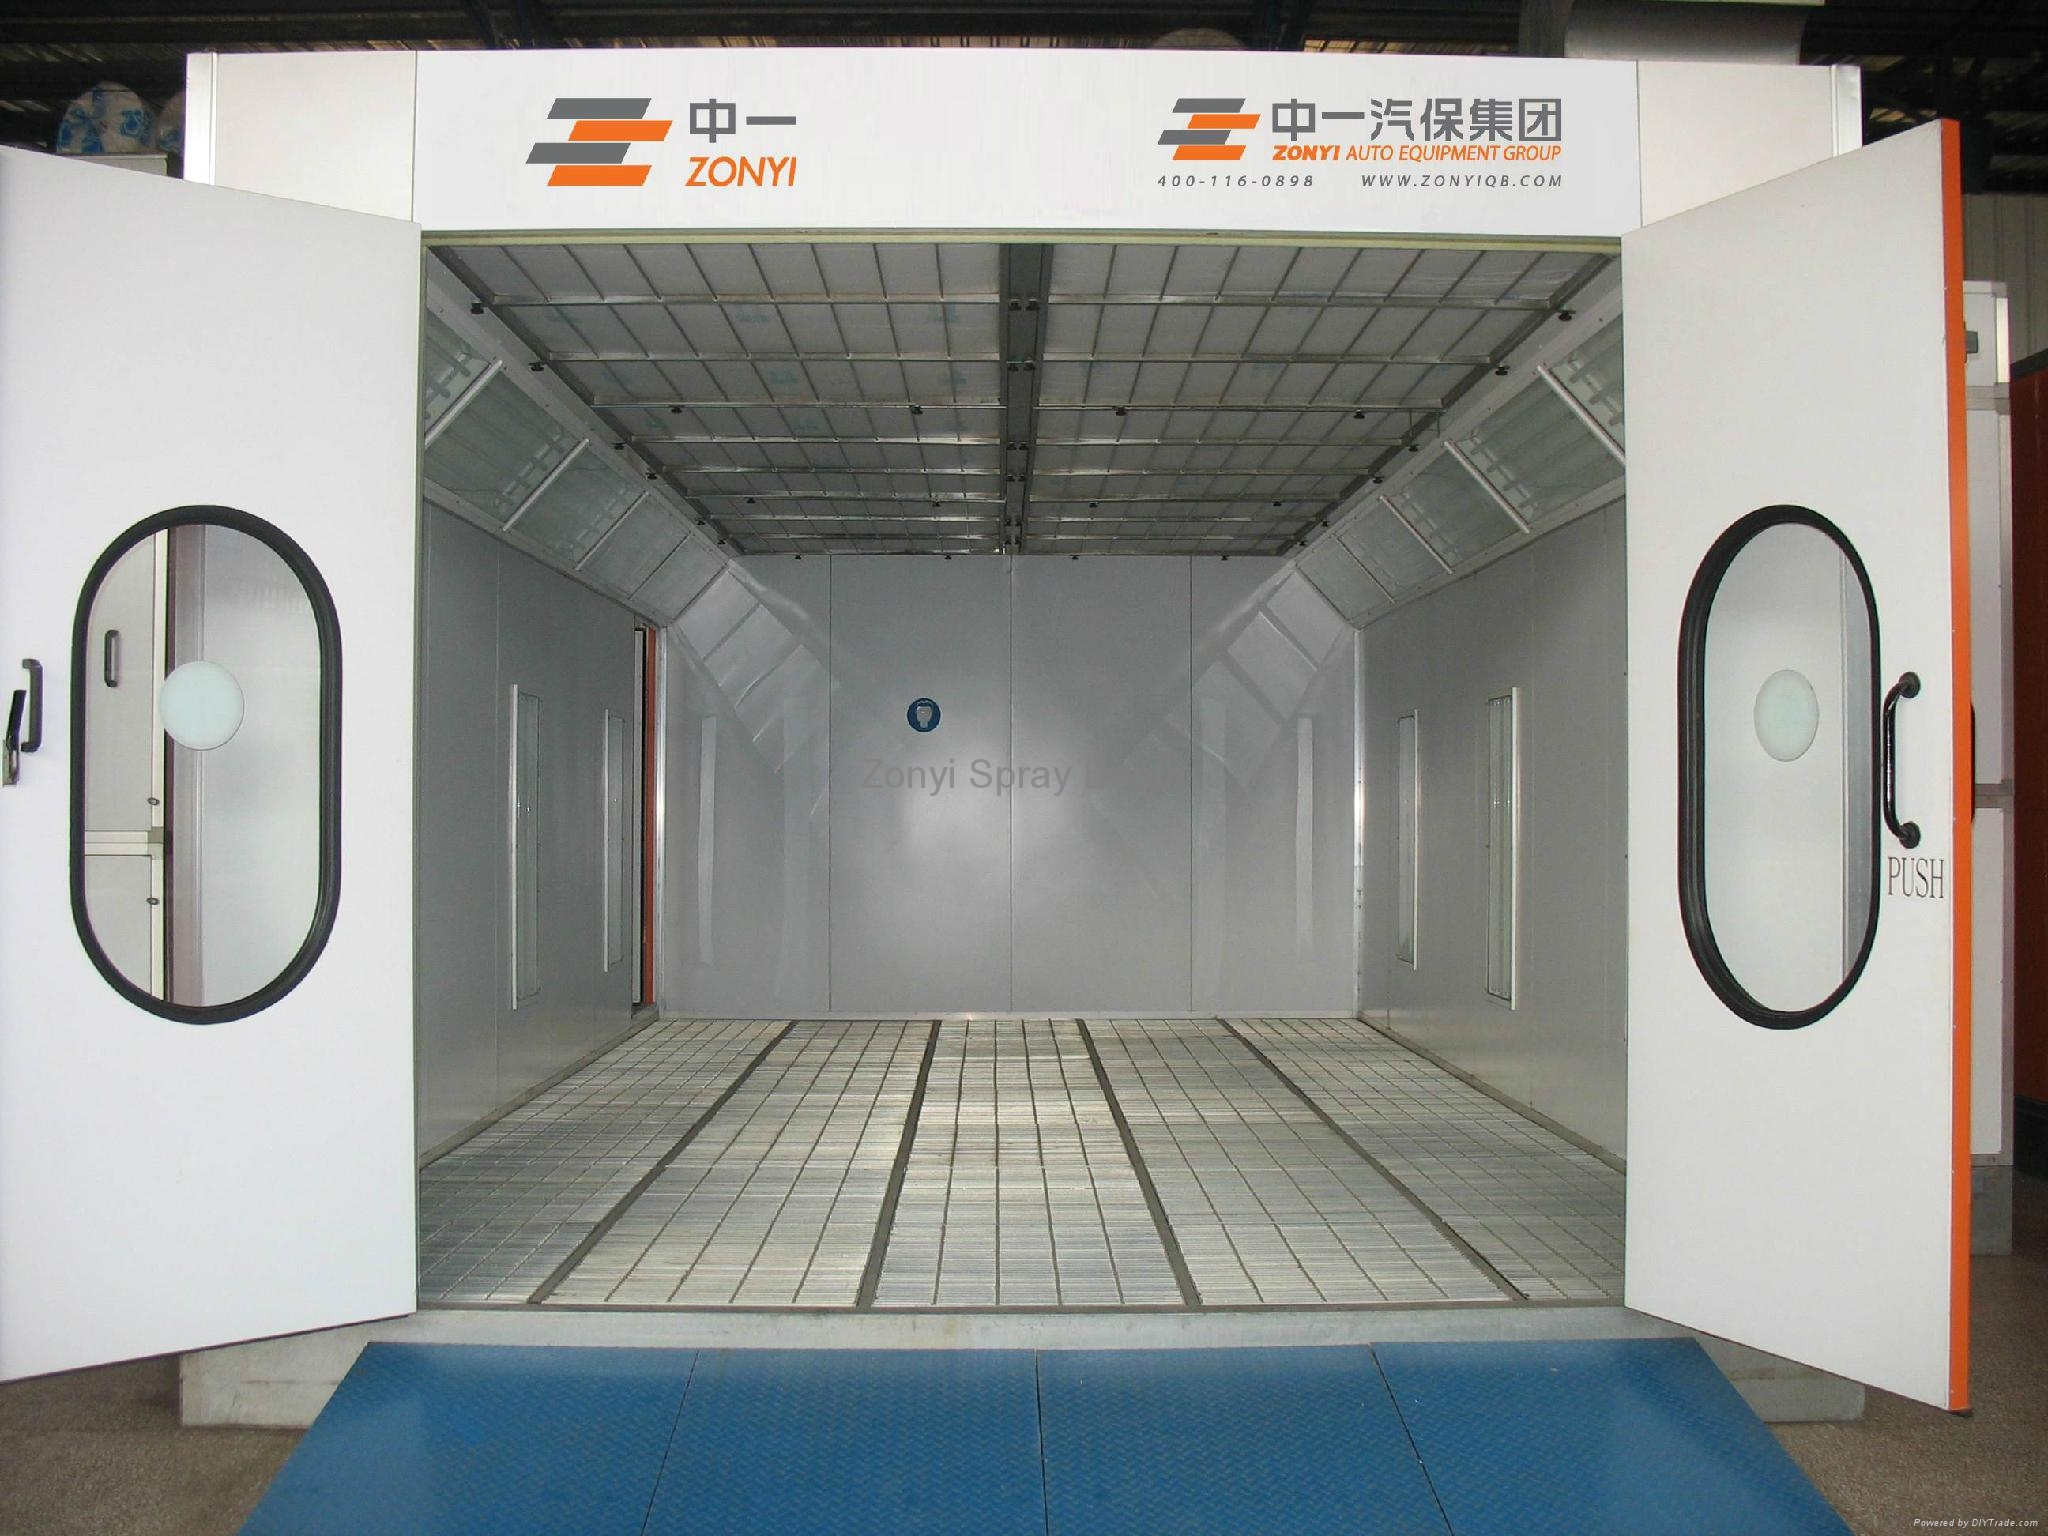 CE Spray Booth Painting Booth Oven Booth 4